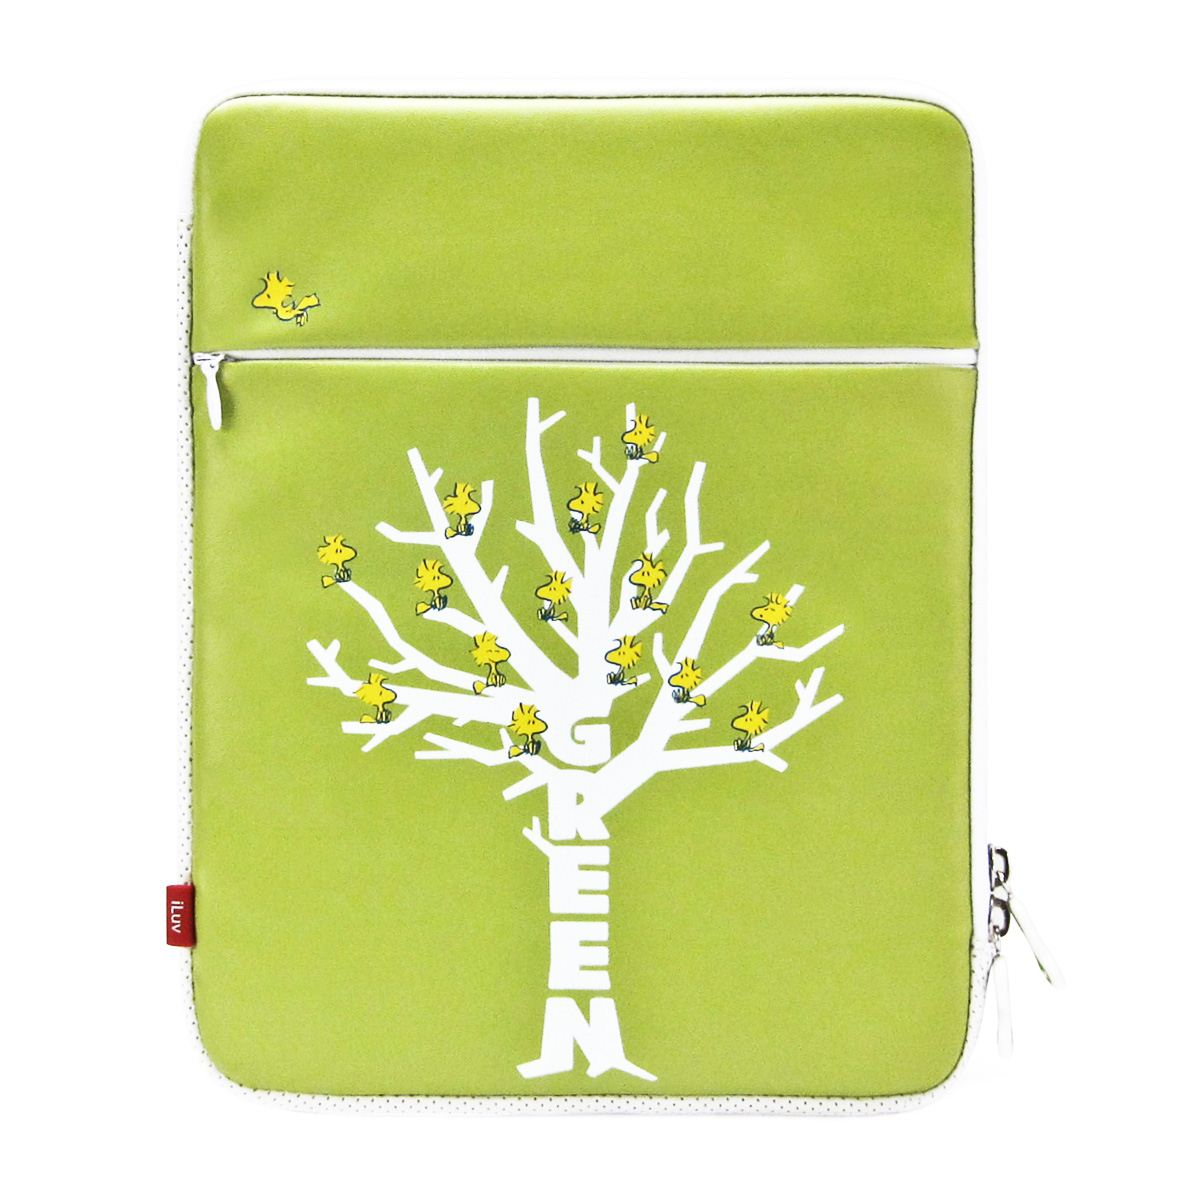 Funda iluv para ipad folio green snoopy  - Sanborns